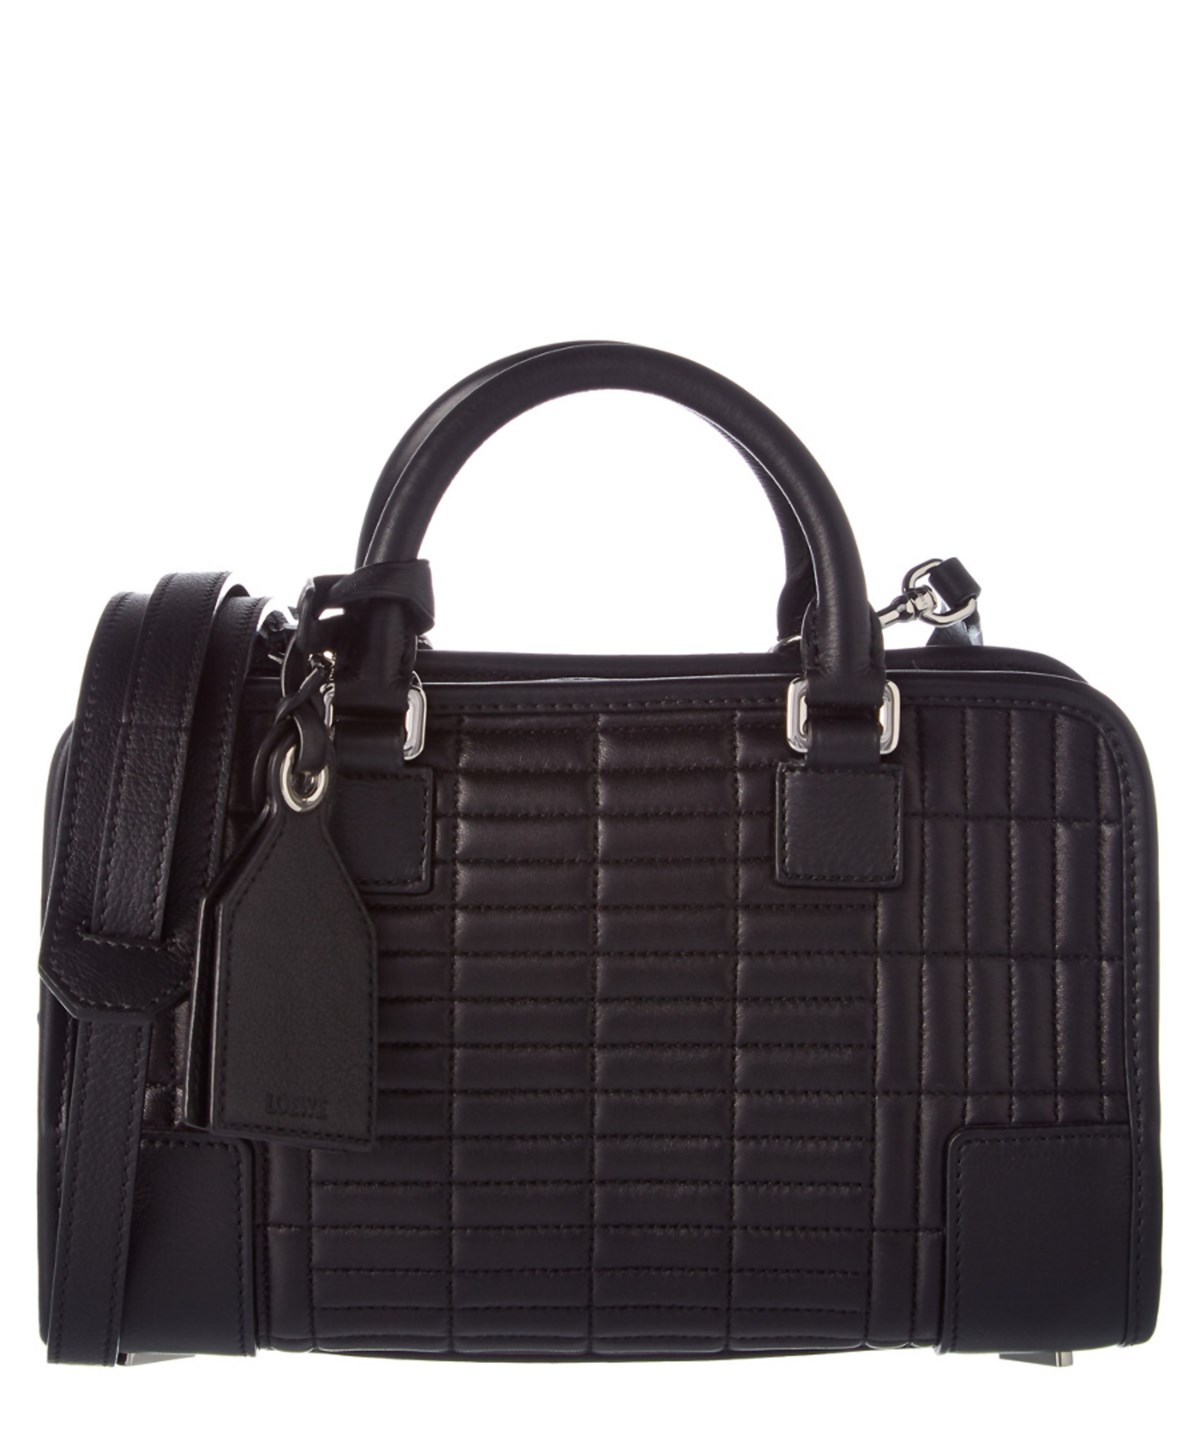 Loewe Amazona 23 Quilted Leather Satchel In Black